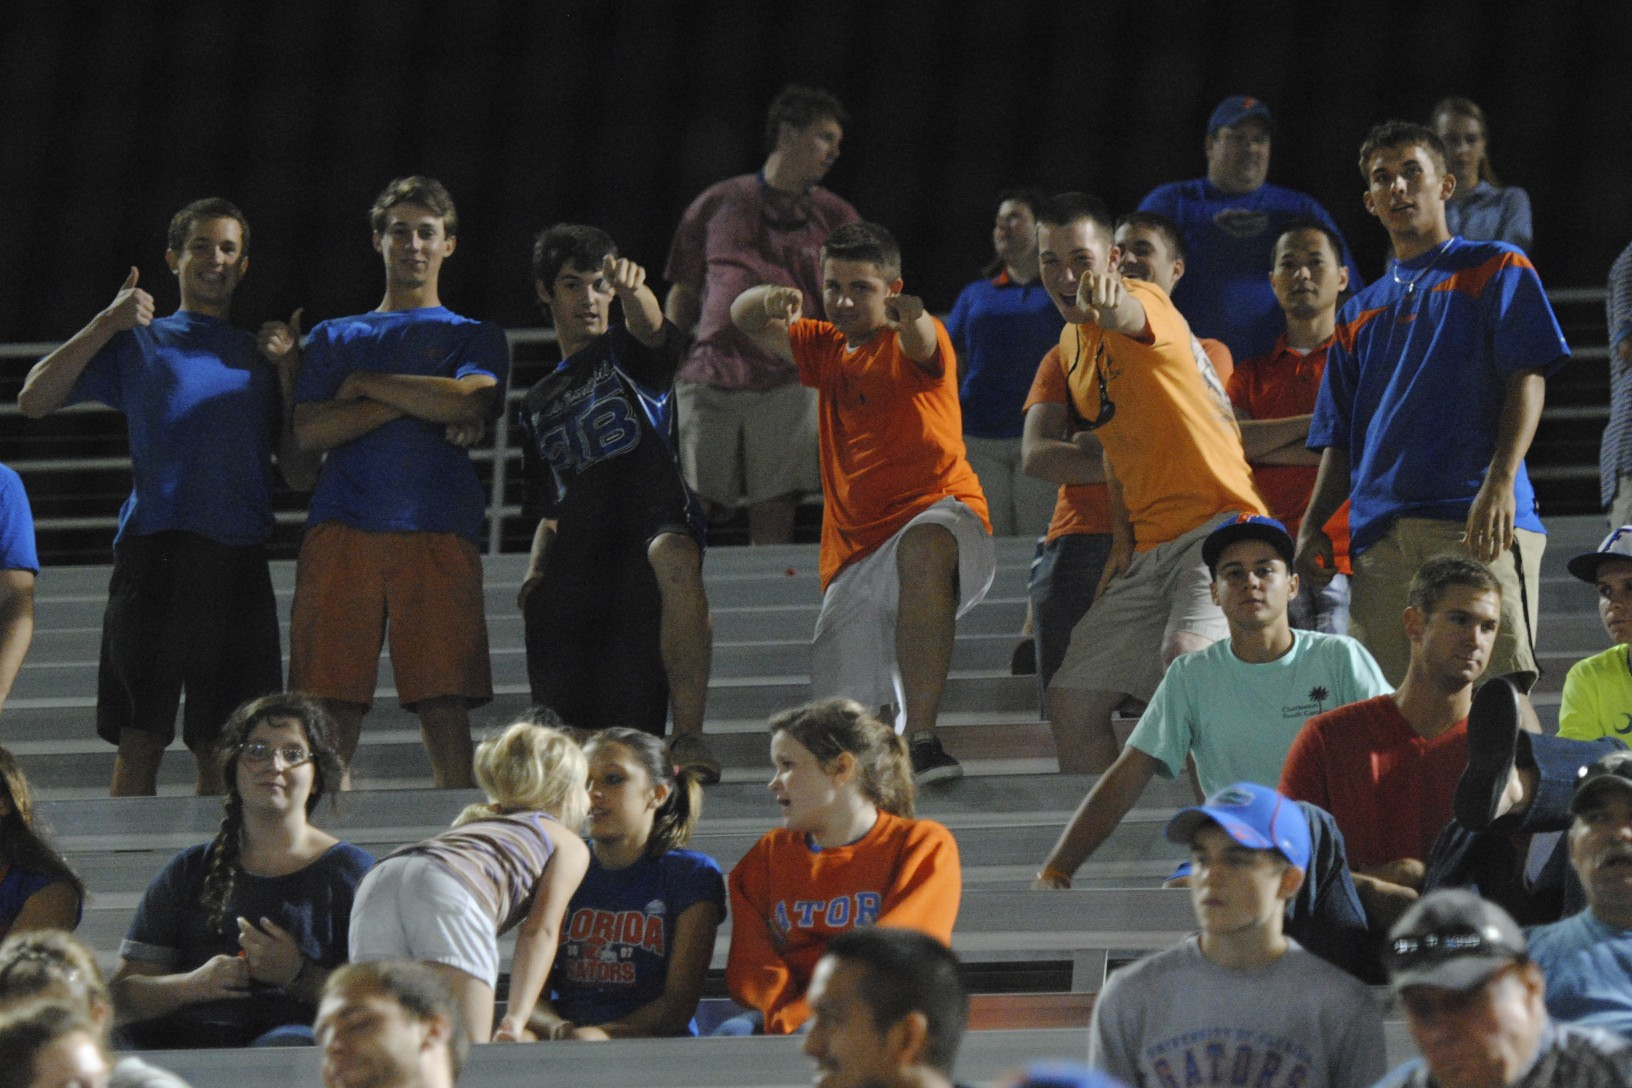 Many fans toughed it out through the 16 innings in support of their Florida Gators.